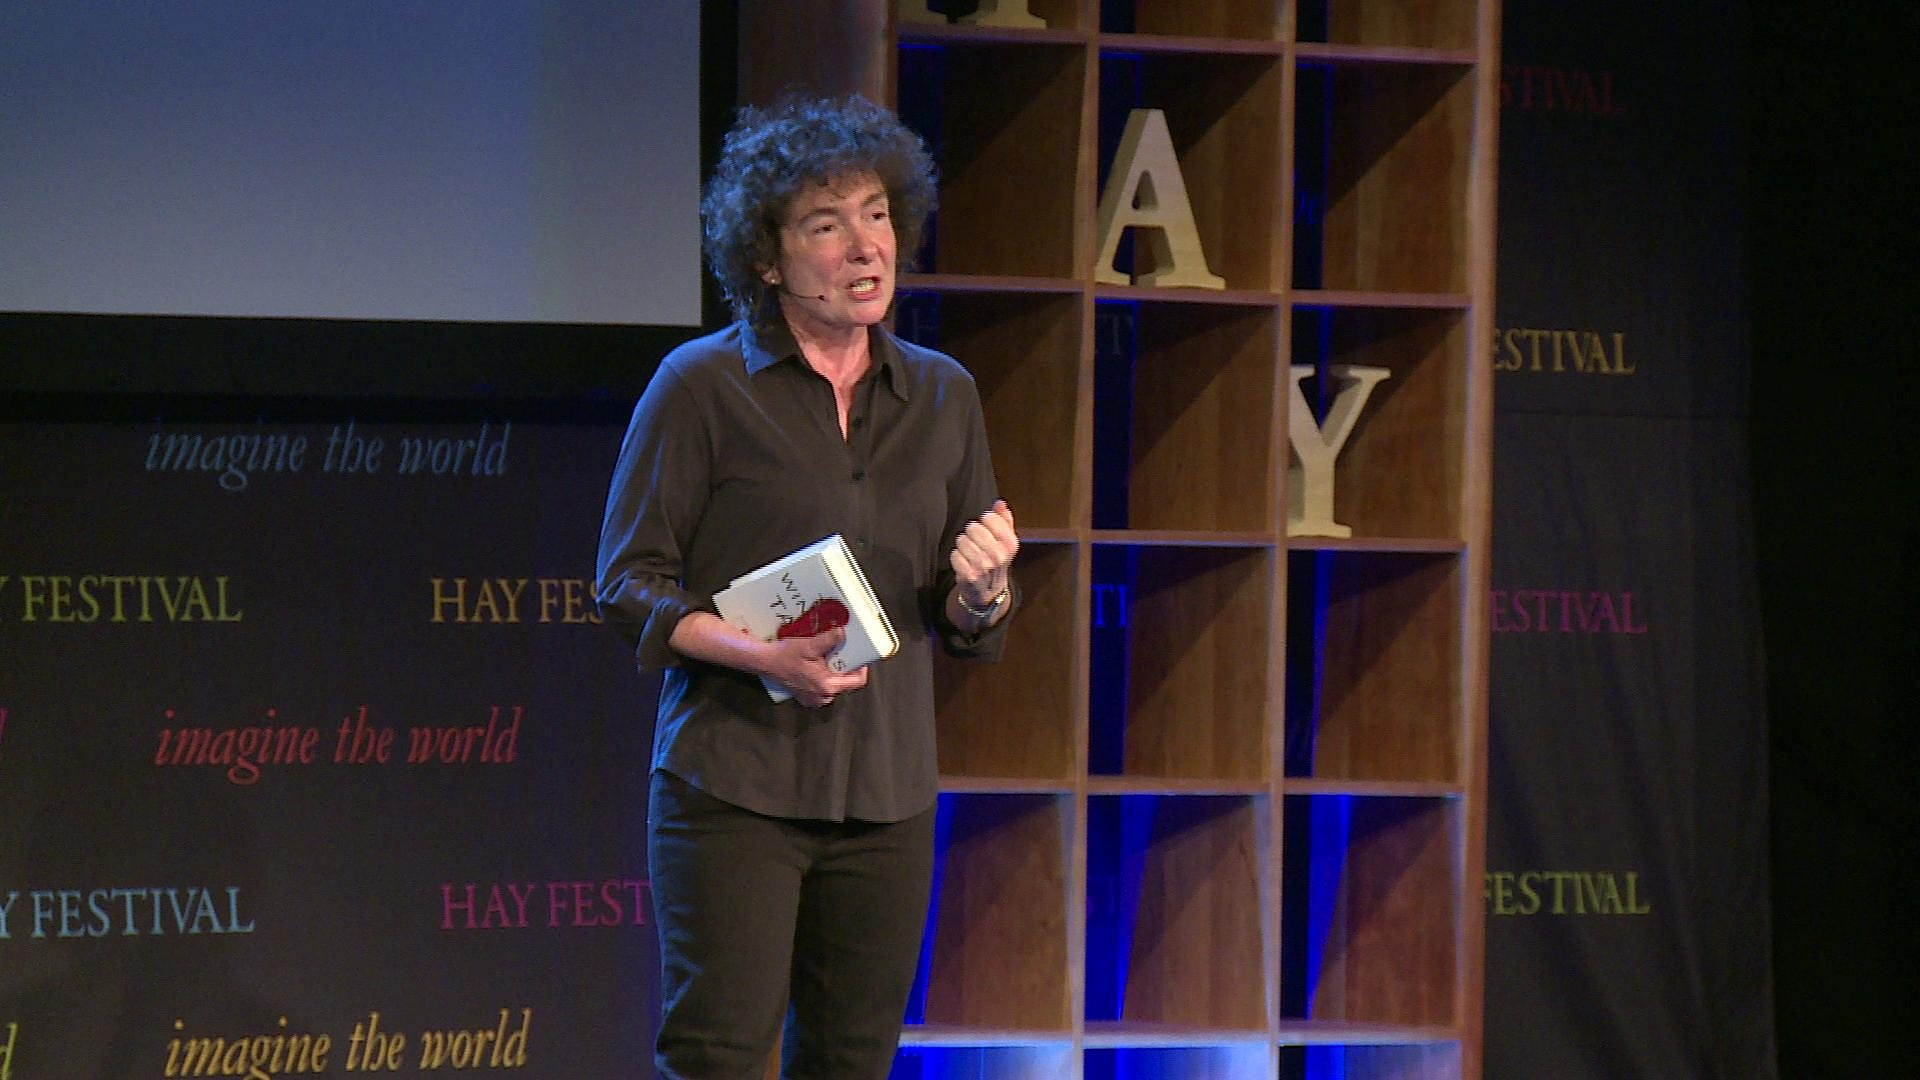 imagination and reality essay by jeanette winterson We living in the real world or it is imagination this is something that is talked about in jeanette winterson essay this favours those who prefer not to live in a notional reality where goods are worth more than time and where things are more important than ideas, as winterson said in her essay.